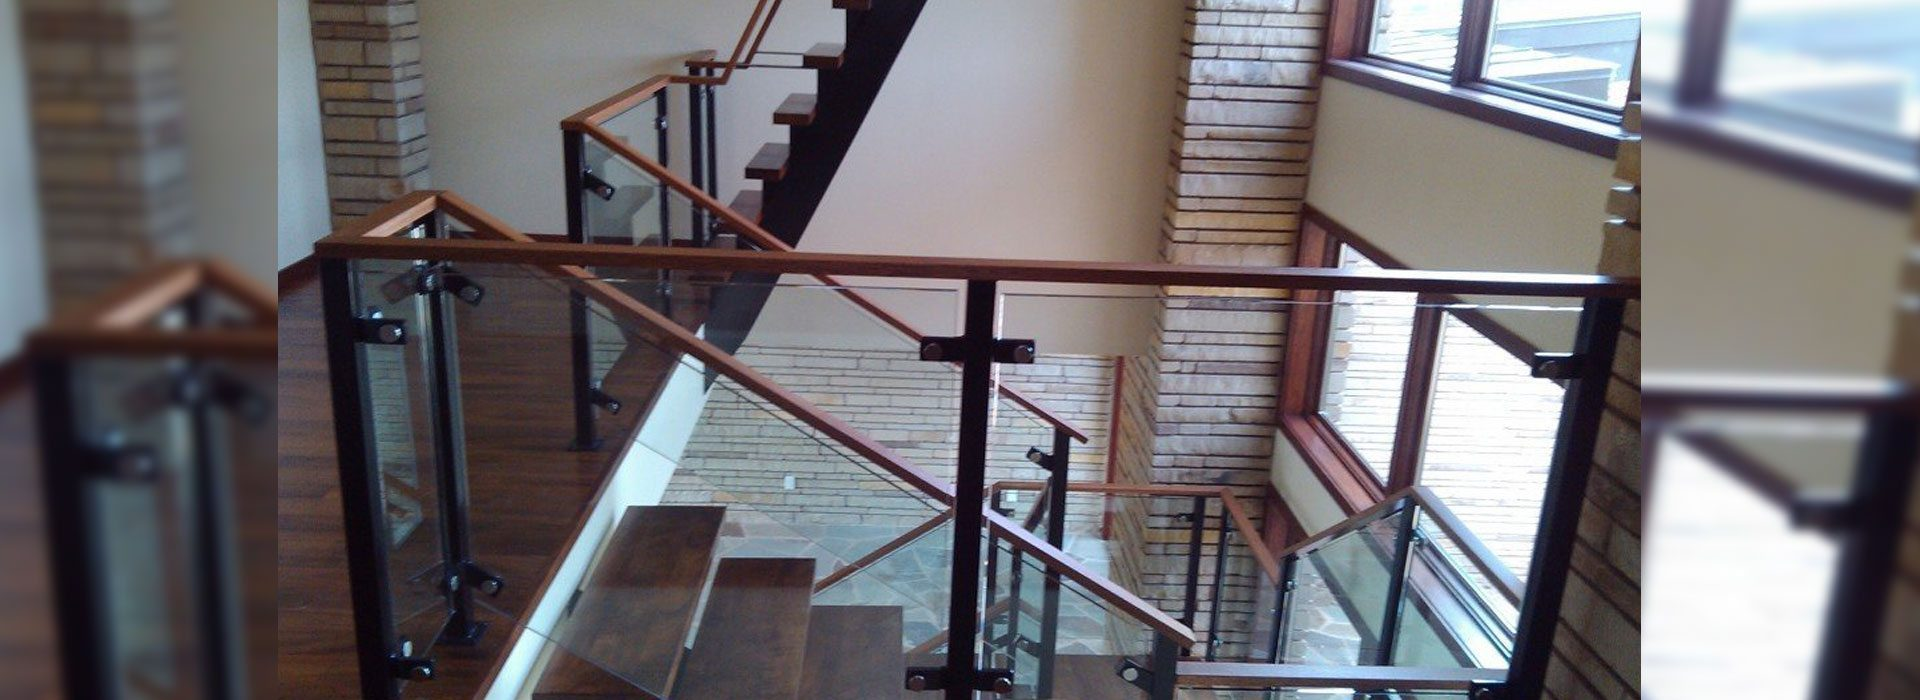 Commercial Building Interior with Glass Handrails for Staircase paired with Wood | Commercial Glass Handrail Products | Commercial Products | Anchor-Ventana Glass